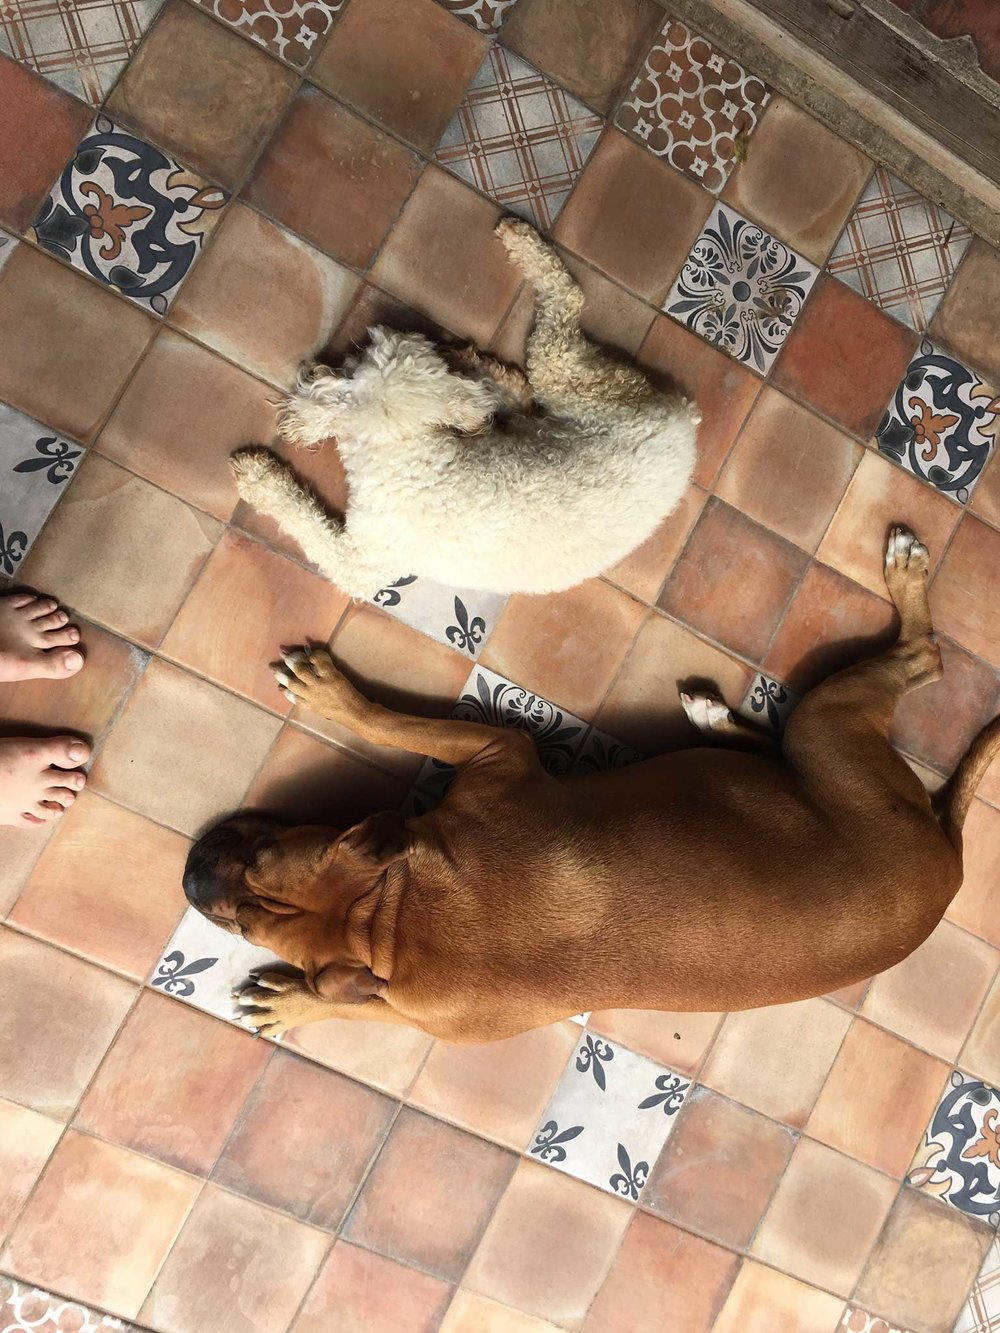 Dogs of the house we were visiting in Nicaragua.